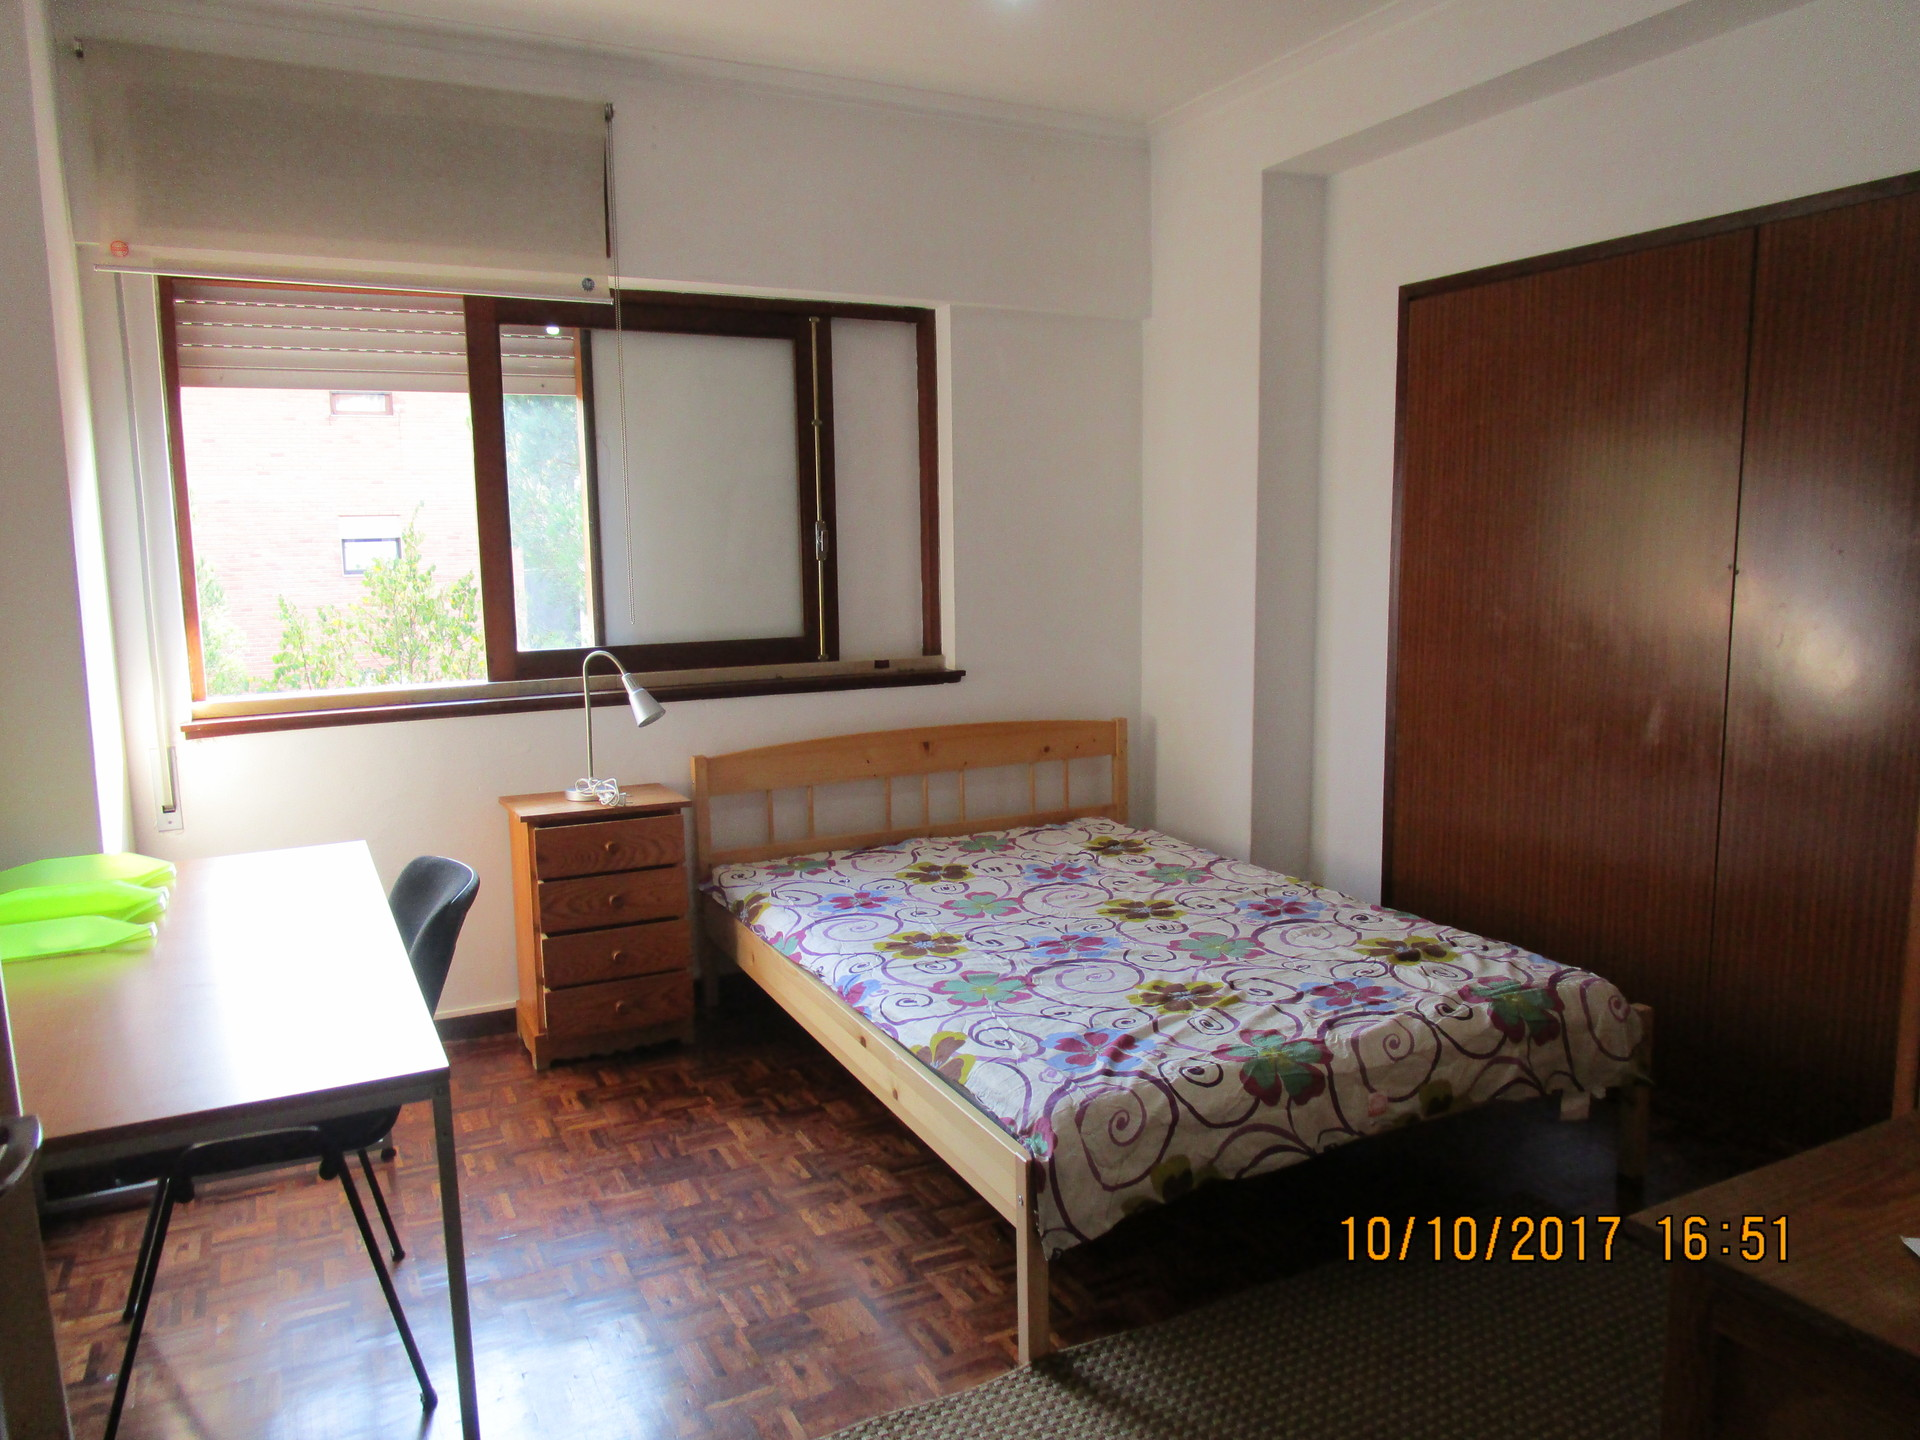 room-nt-pay-reservation-20-minutes-economic-facultat-6506236ac84b17bb9f64c332fb5e74df